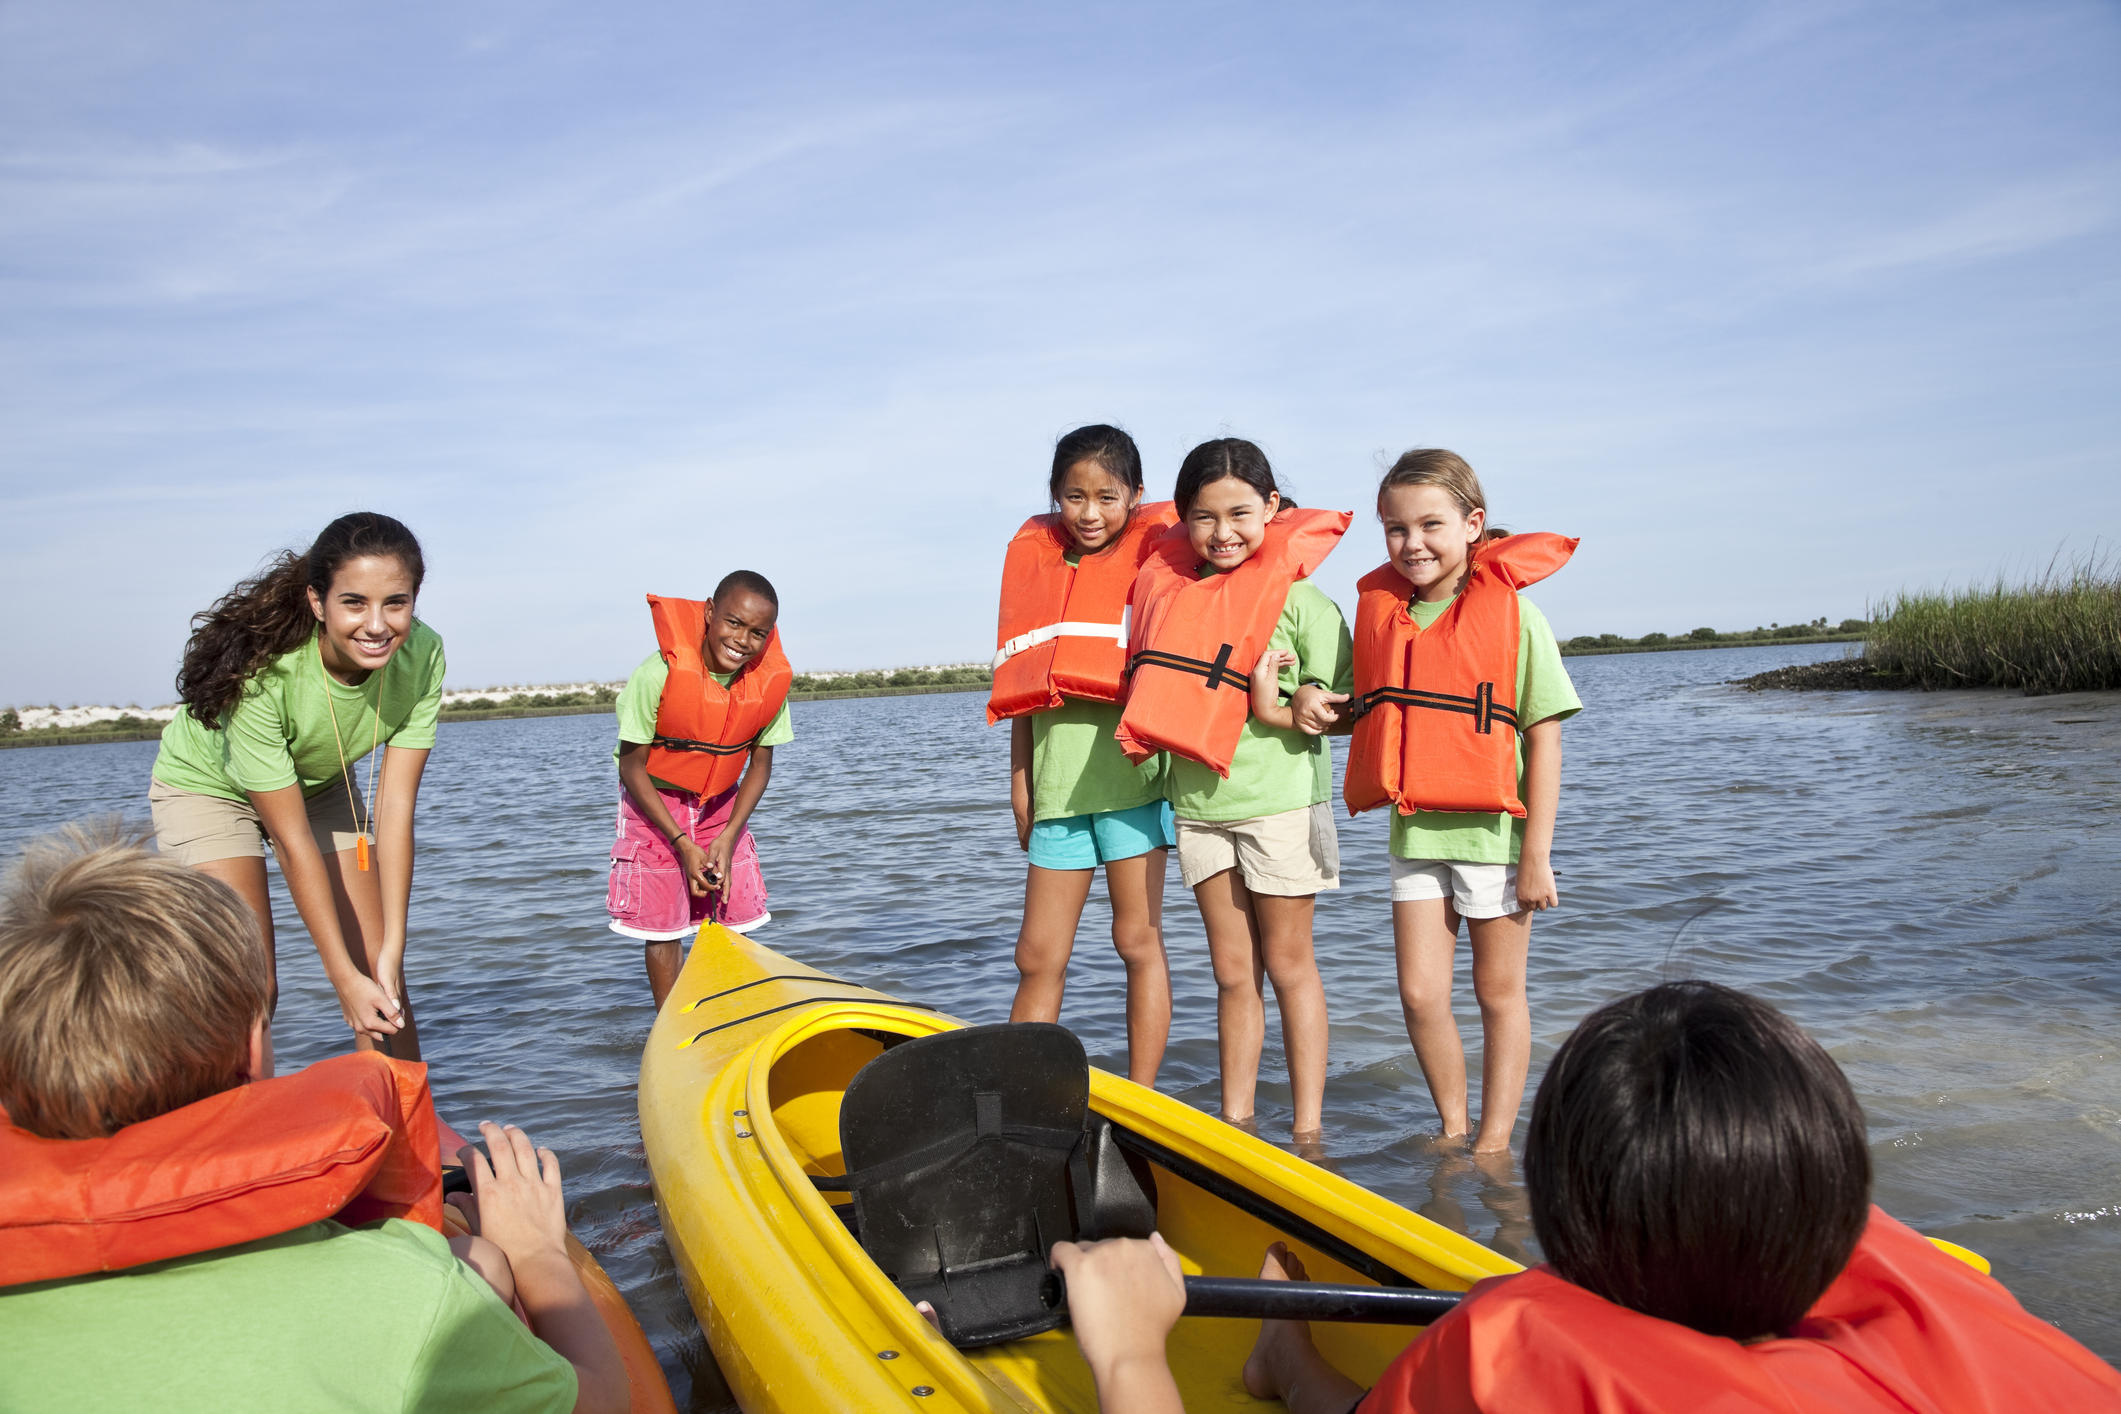 Teenage girl and group of children with kayaks at water sports camp.